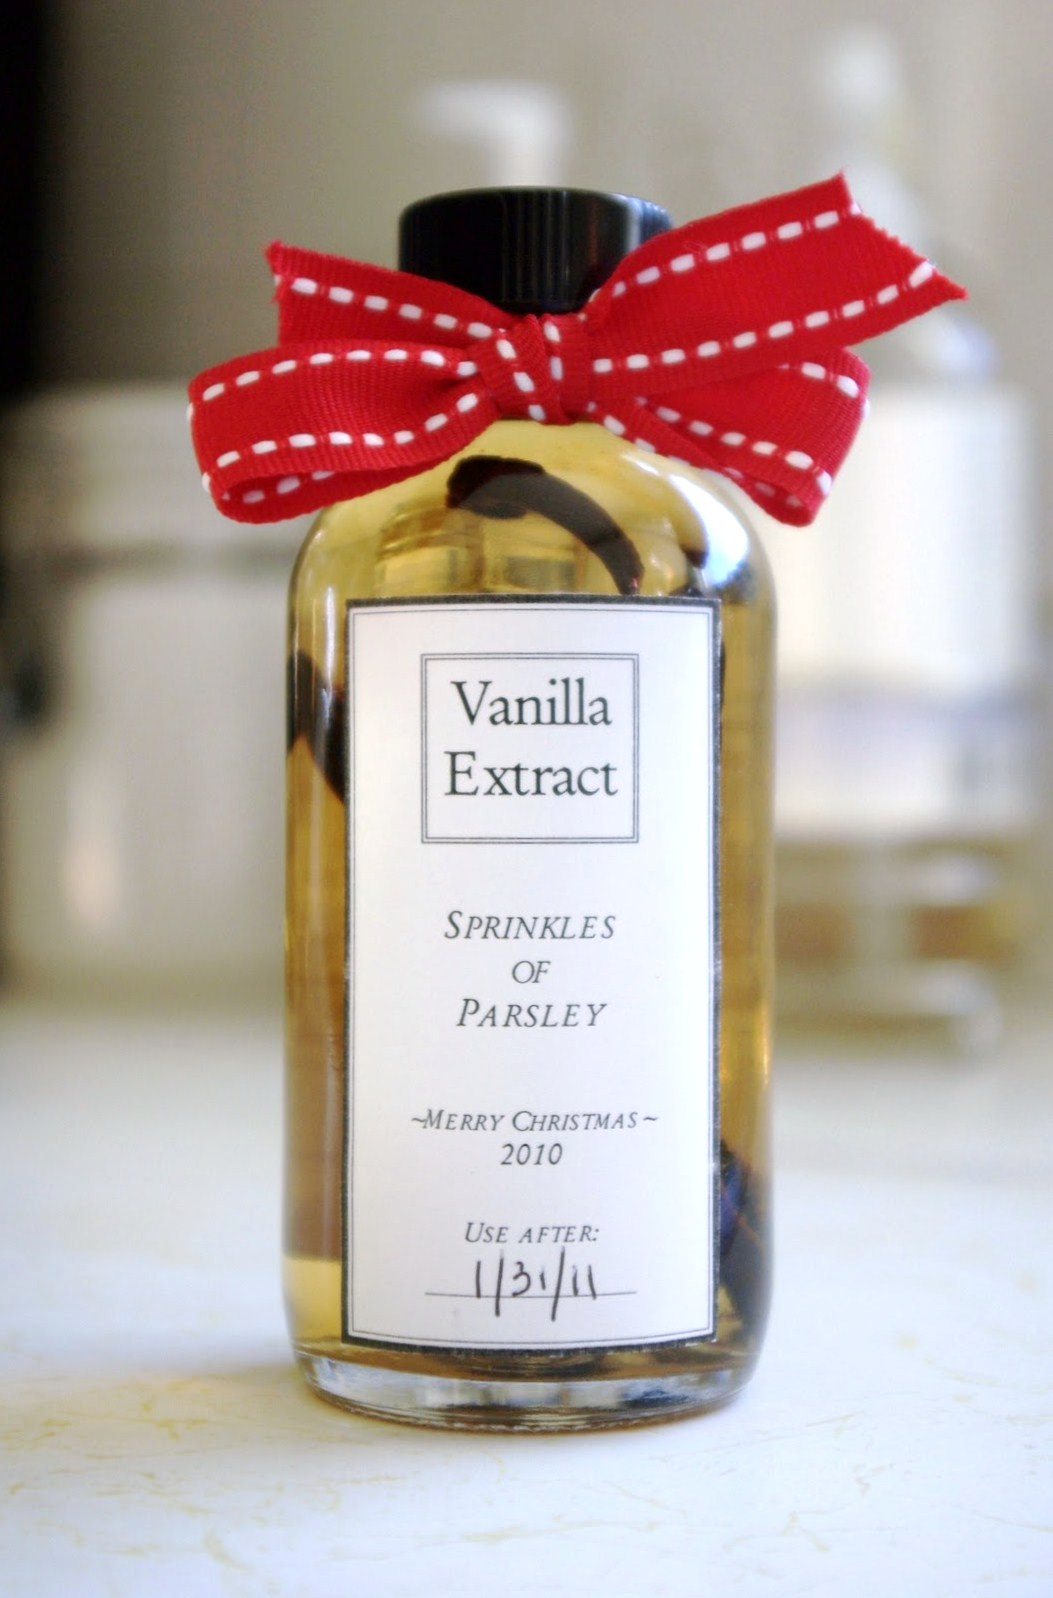 Sprinkles of Parsley: Homemade Vanilla Extract